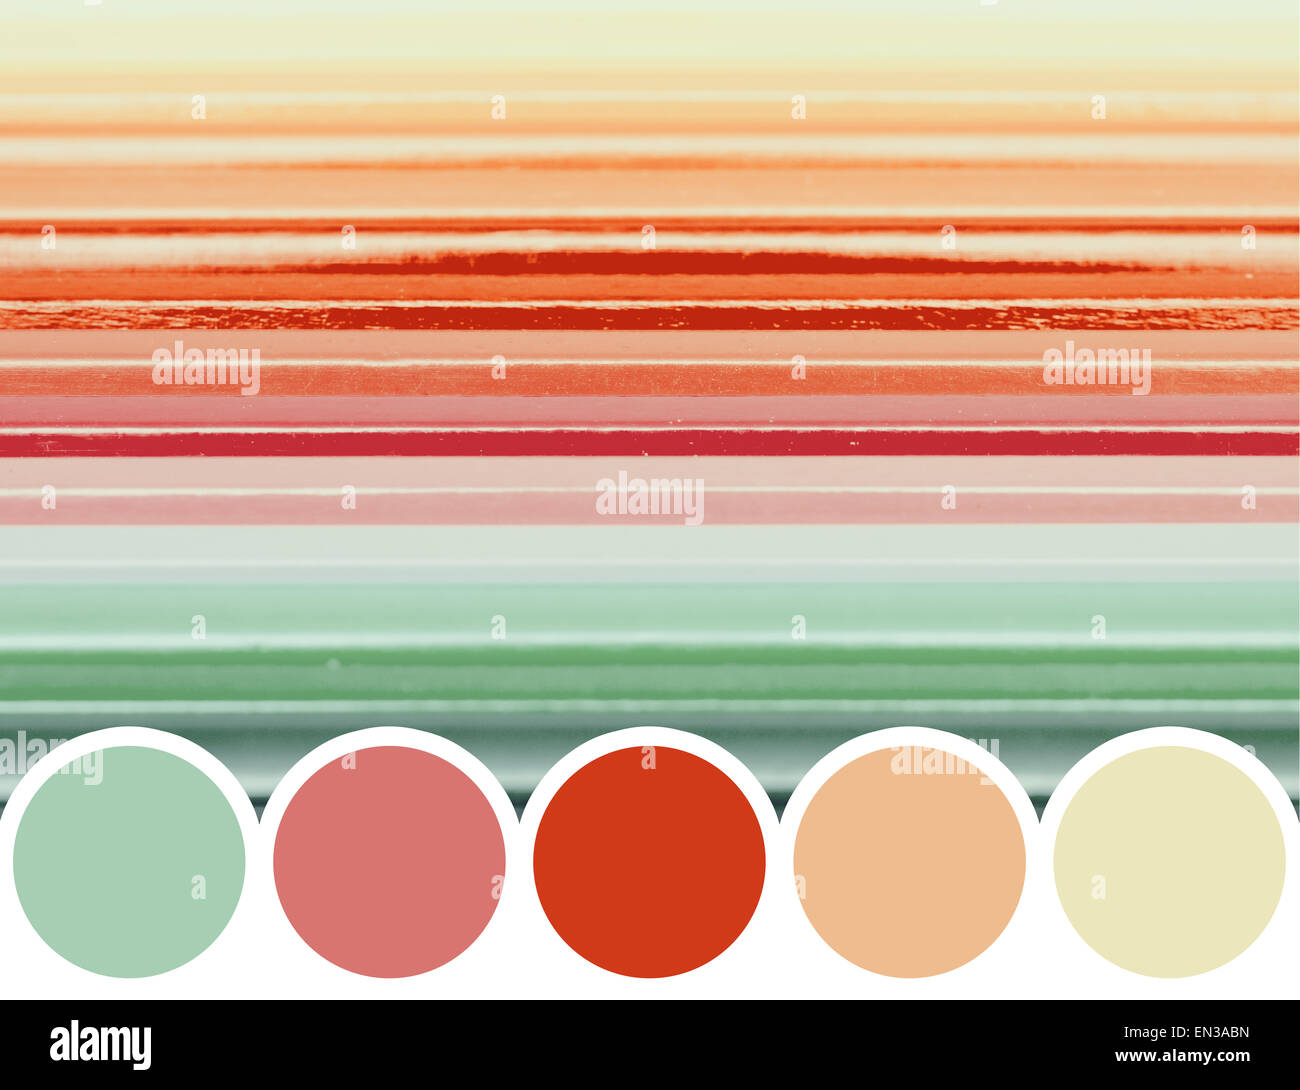 Color Palette Of Coloring Crayons Abstract Stock Photo: 81823273 - Alamy